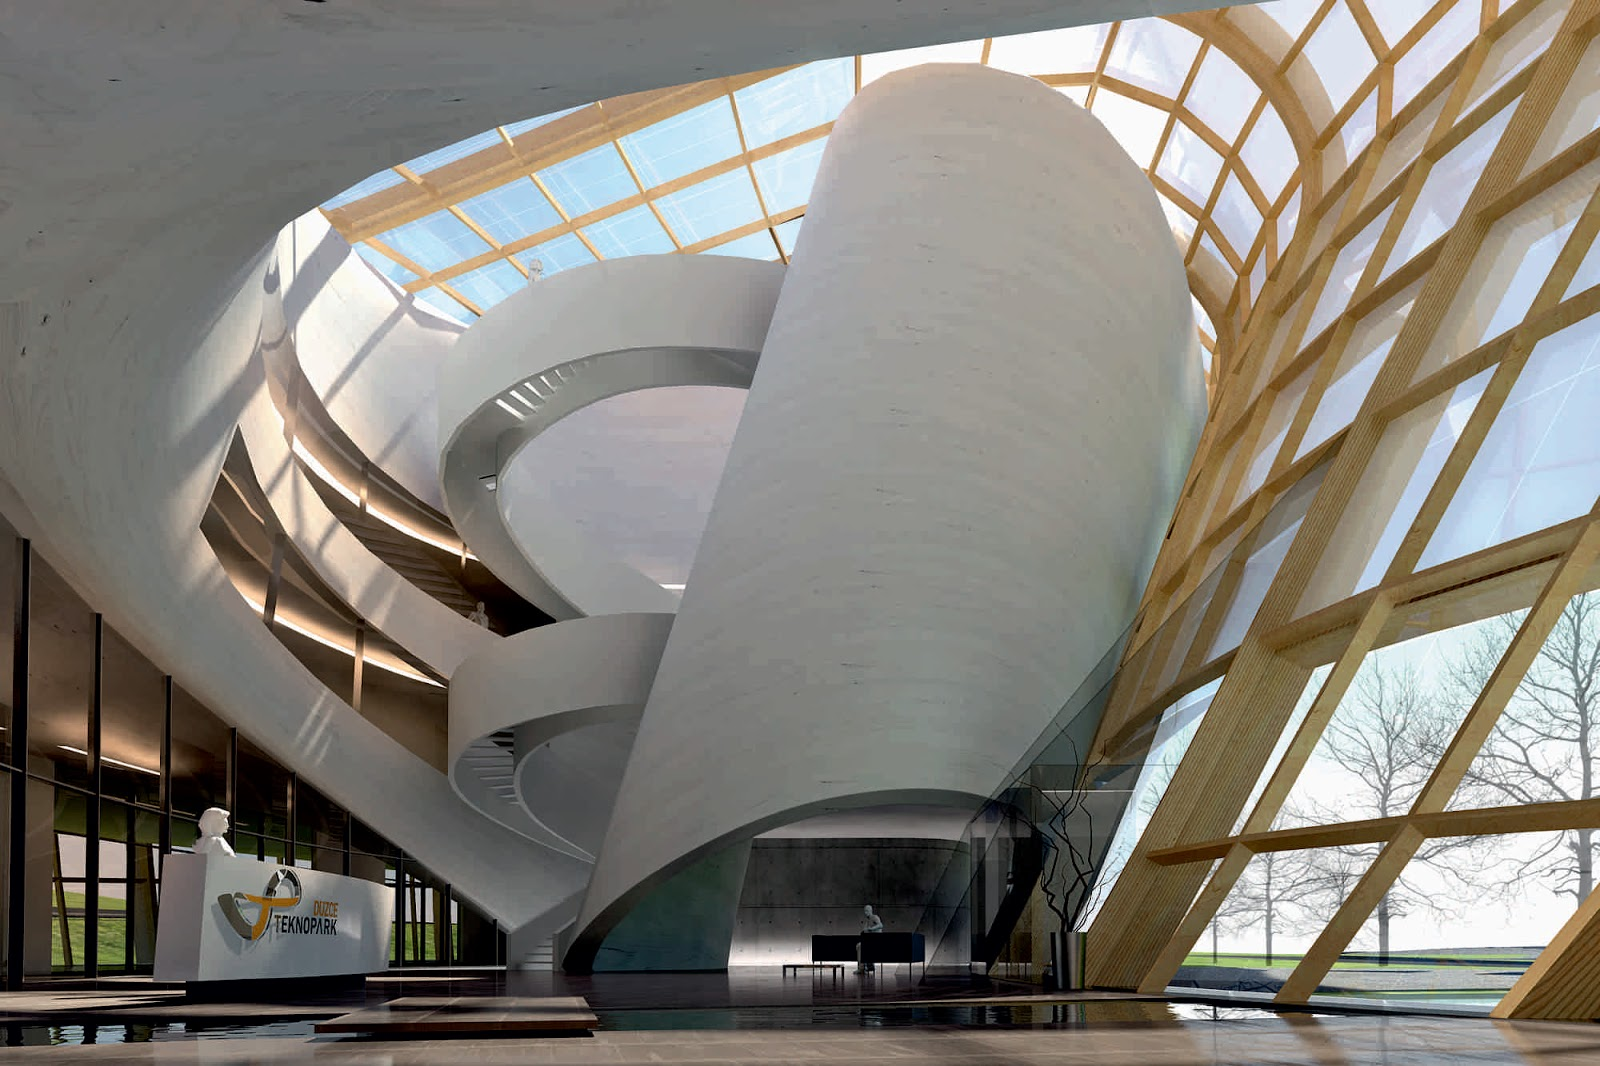 Foyer Architecture Yoga : DÜzce teknopark by ii architects a as architecture